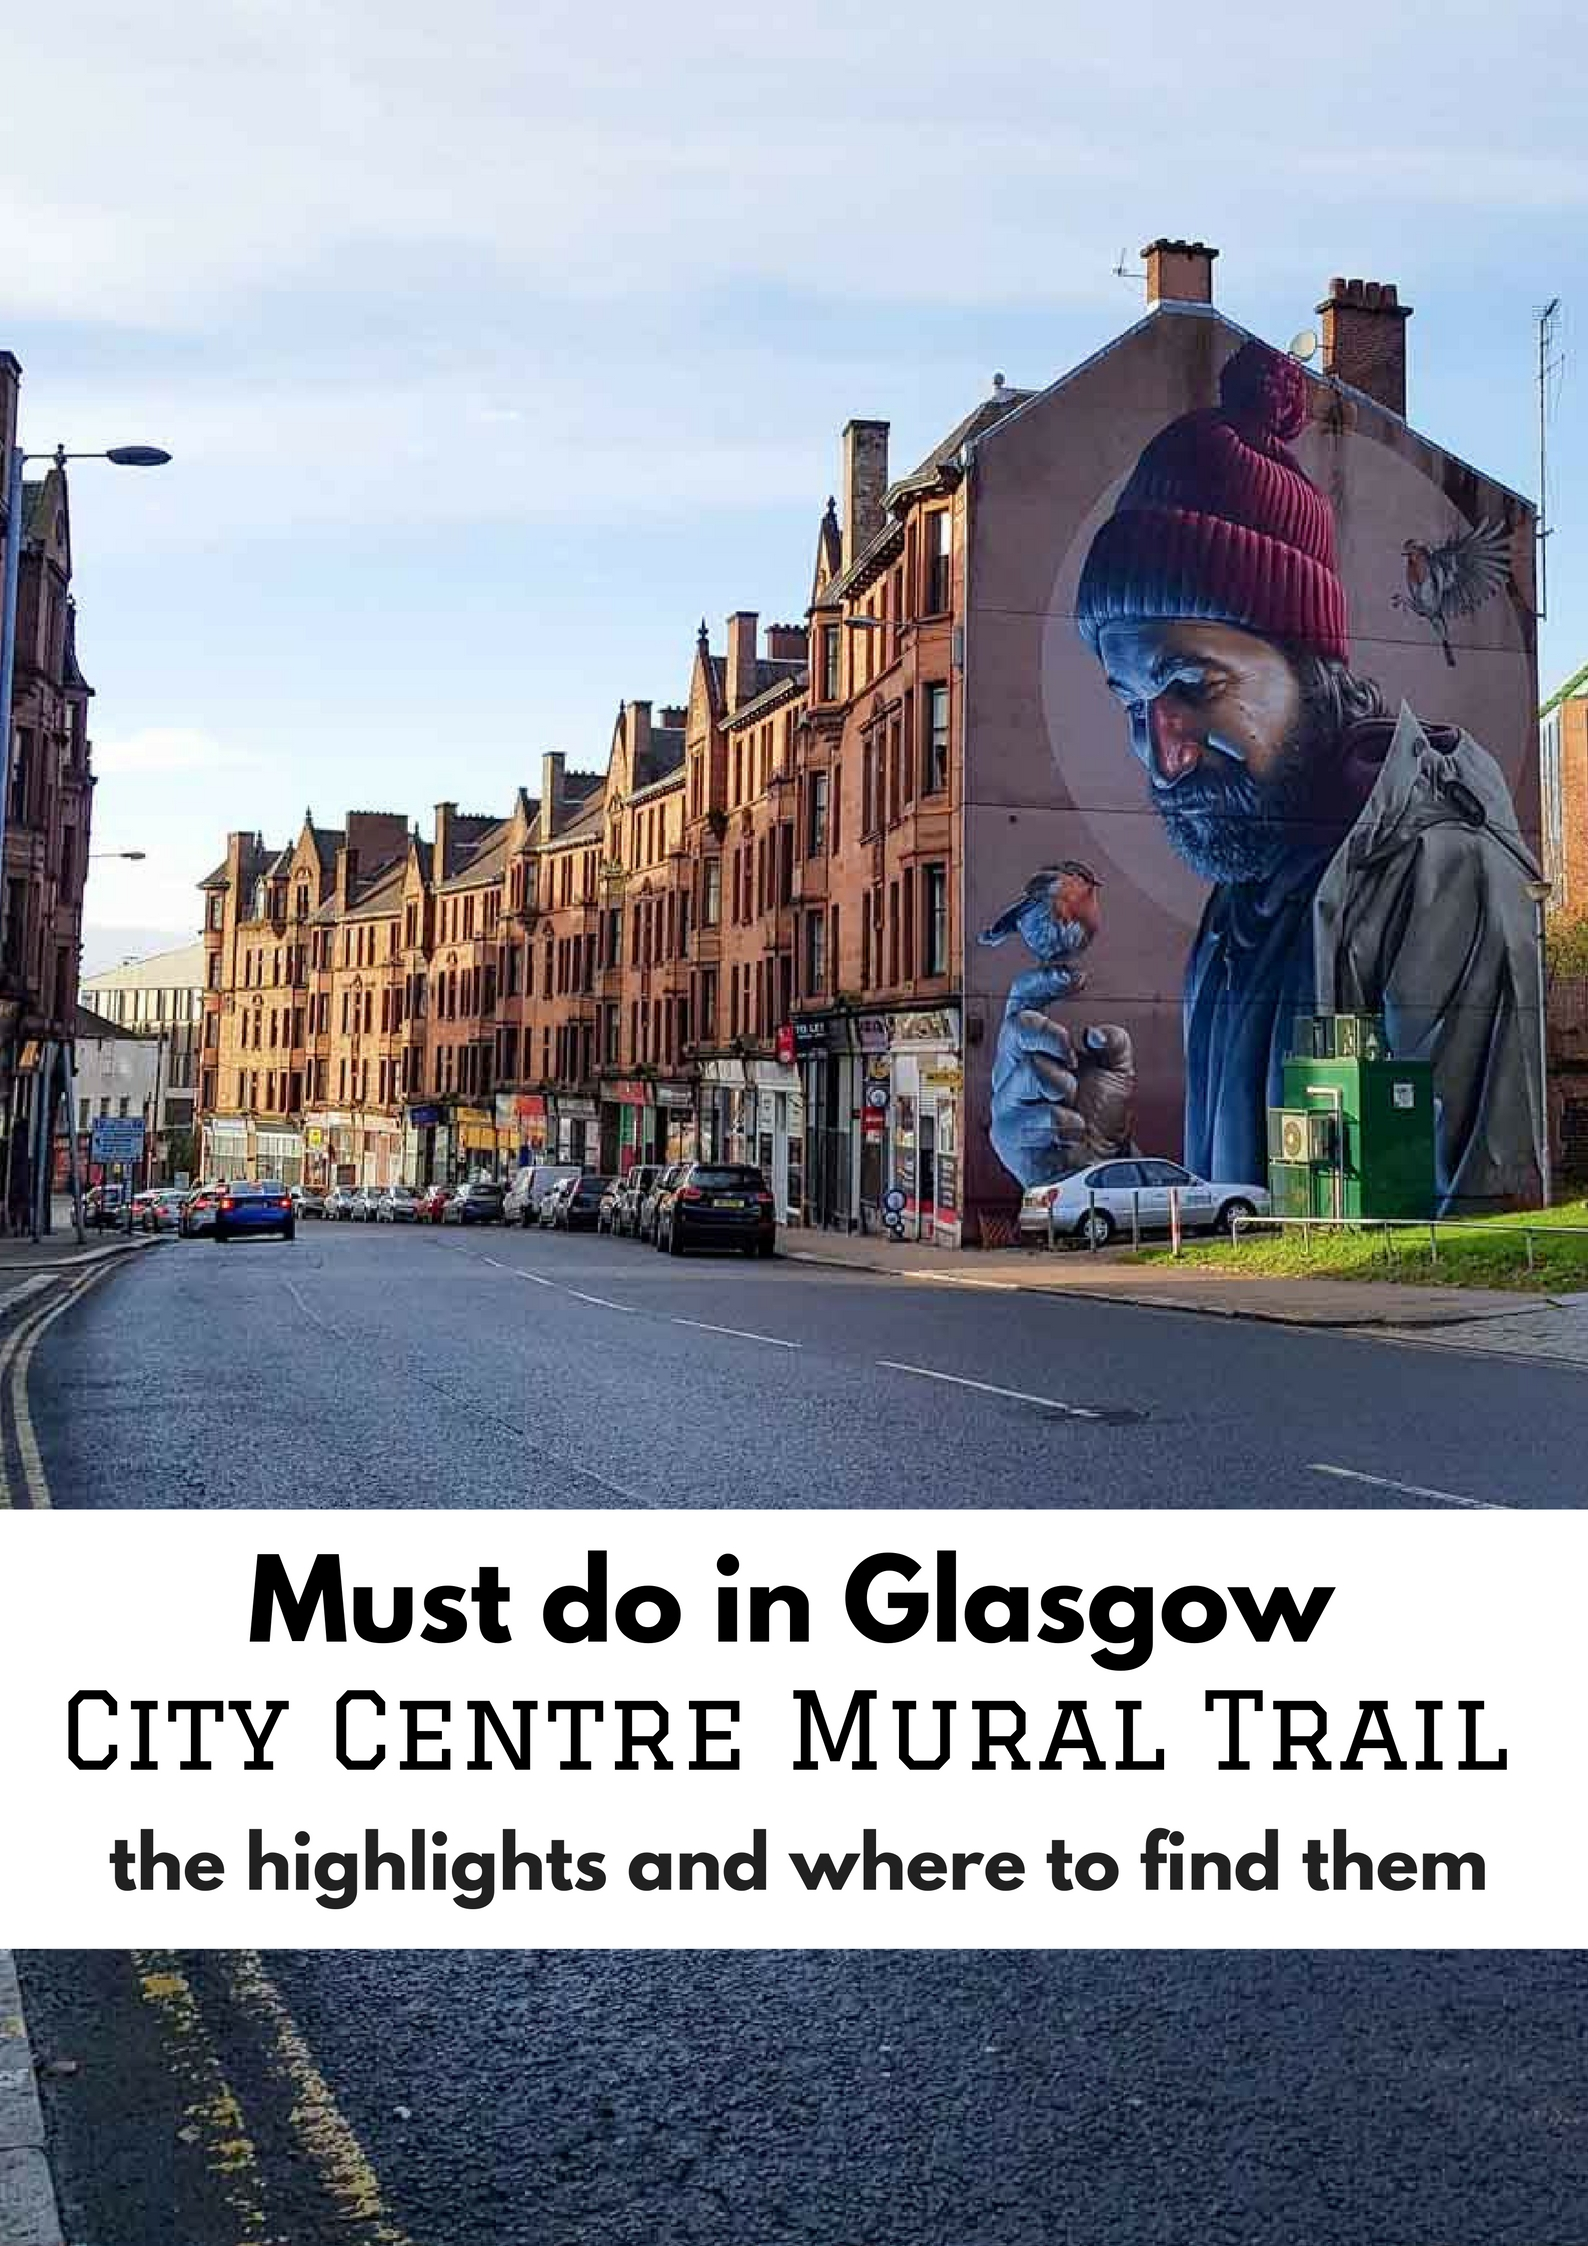 Must do in Glasgow: City Centre Mural Tour. Street art highlights and where to find them - Map of Joy